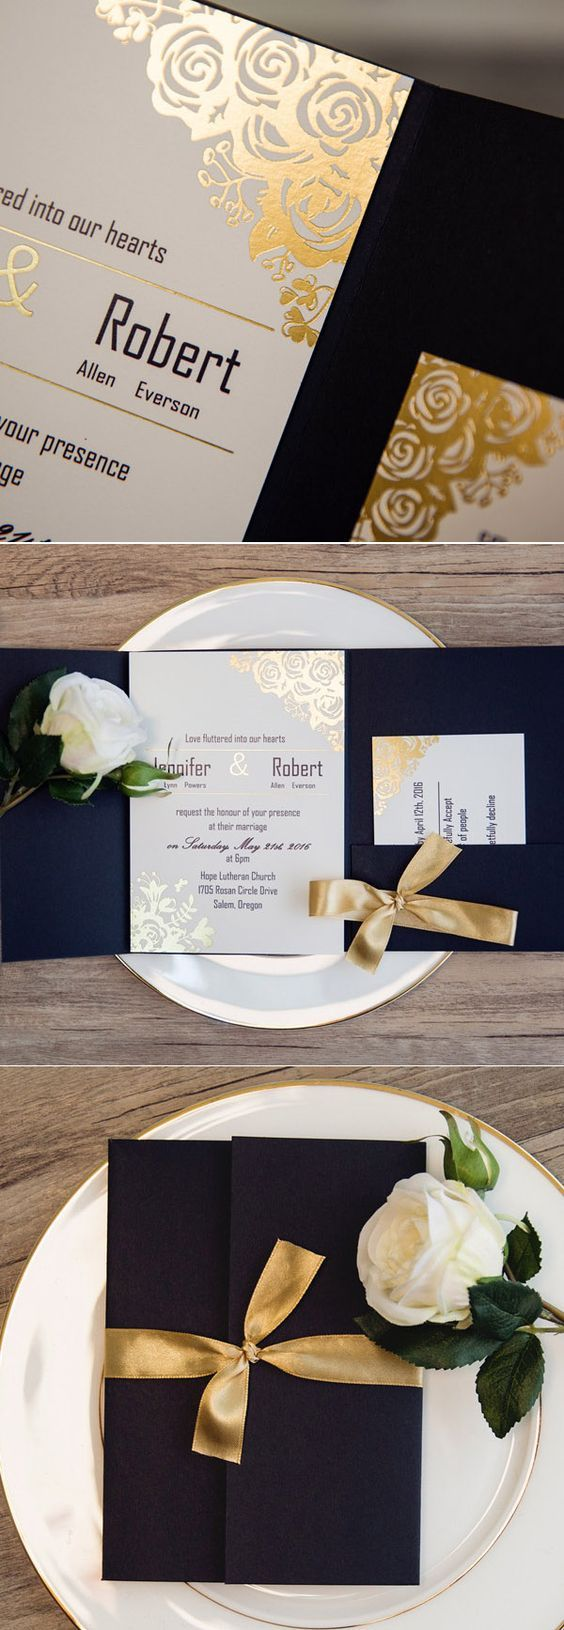 invitation letter for us vissample wedding%0A Top    Wedding Invitation Trends For